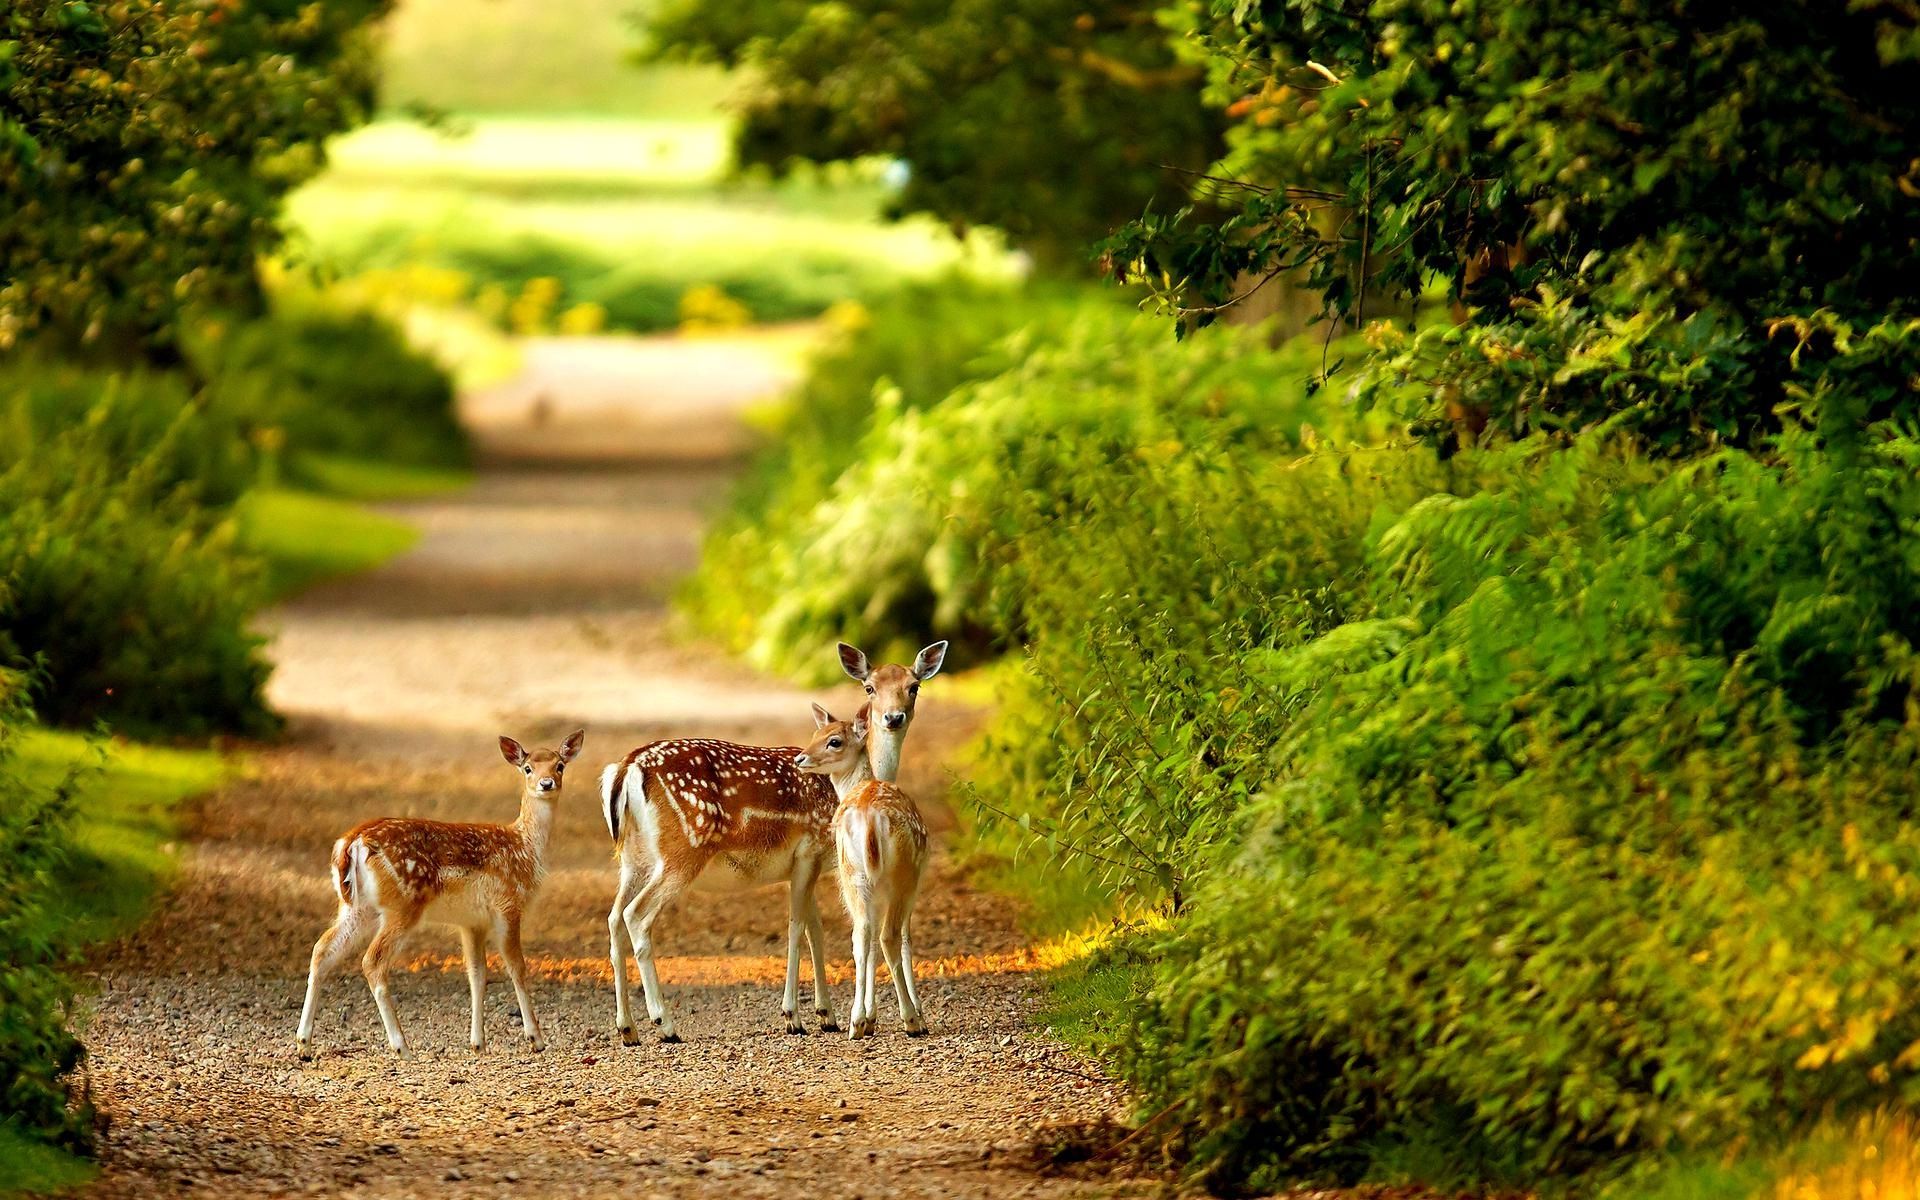 Deer-in-forest-wall-poster-photography